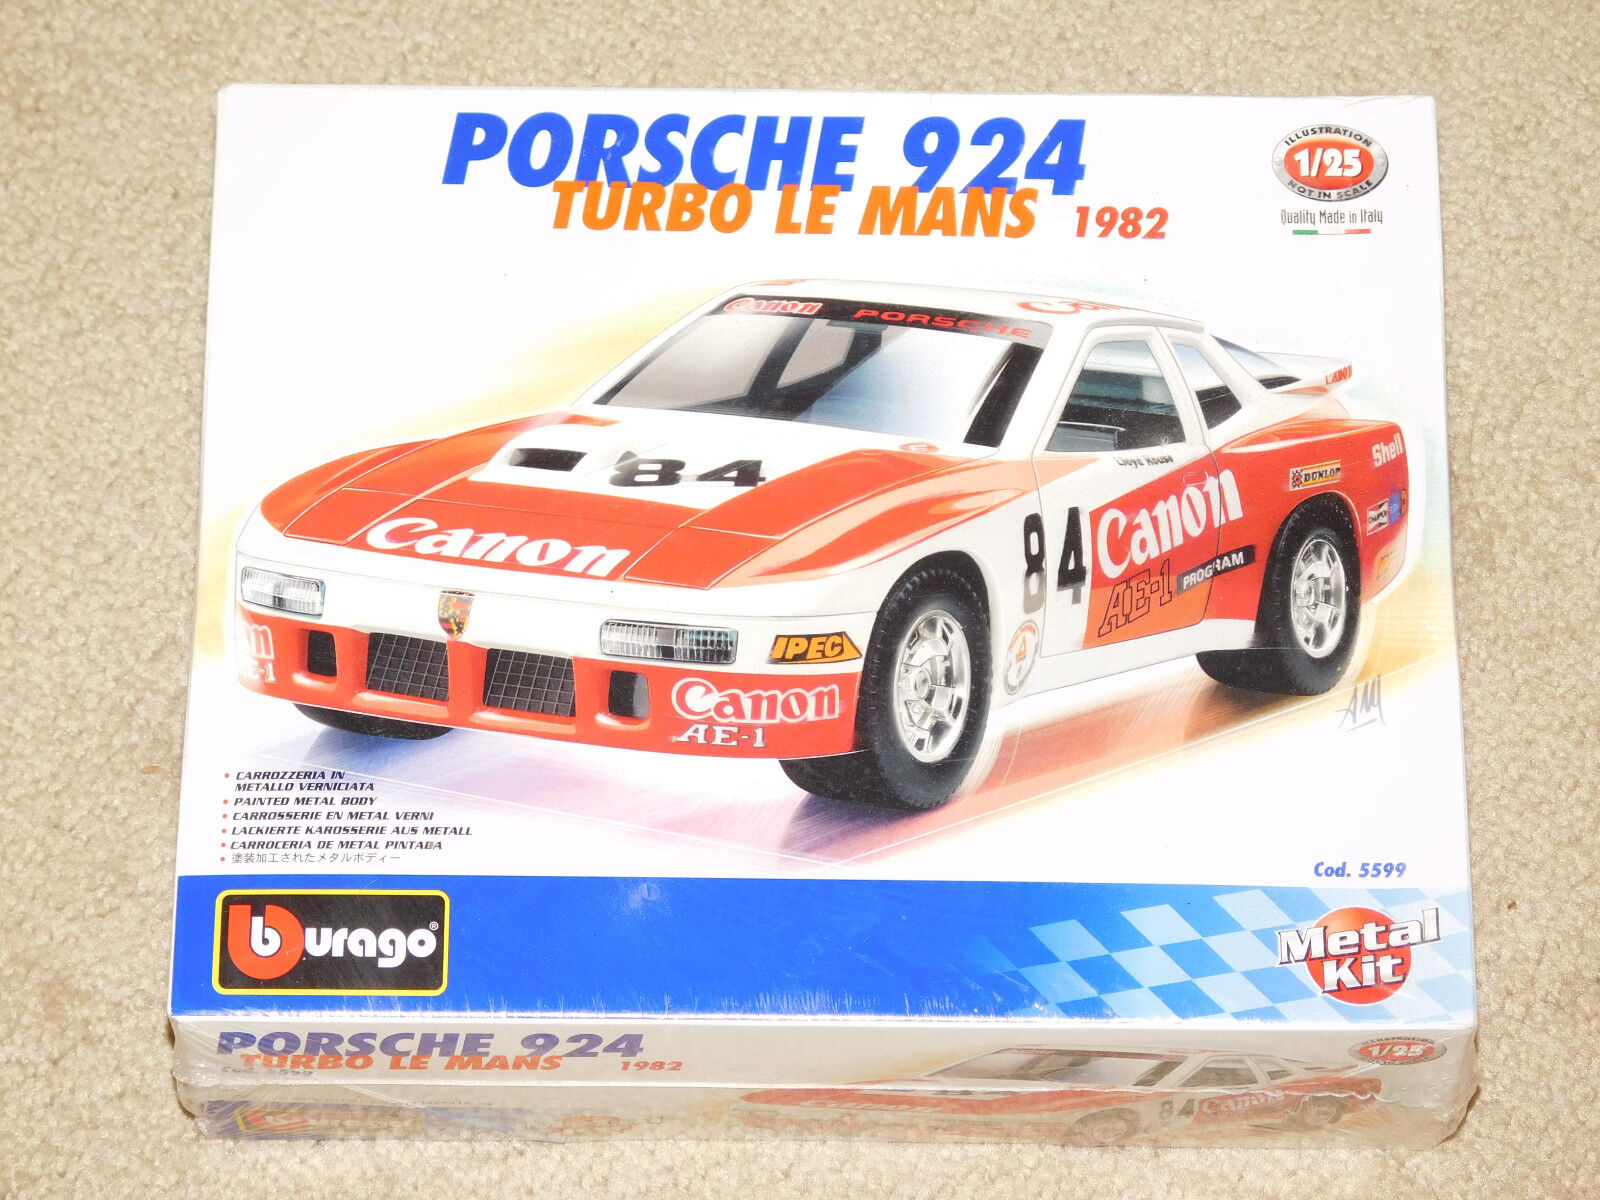 BBURAGO 1 25 SCALE 1982 PORSCHE 924 TURBO LE MANS METAL MODEL (New In Box)